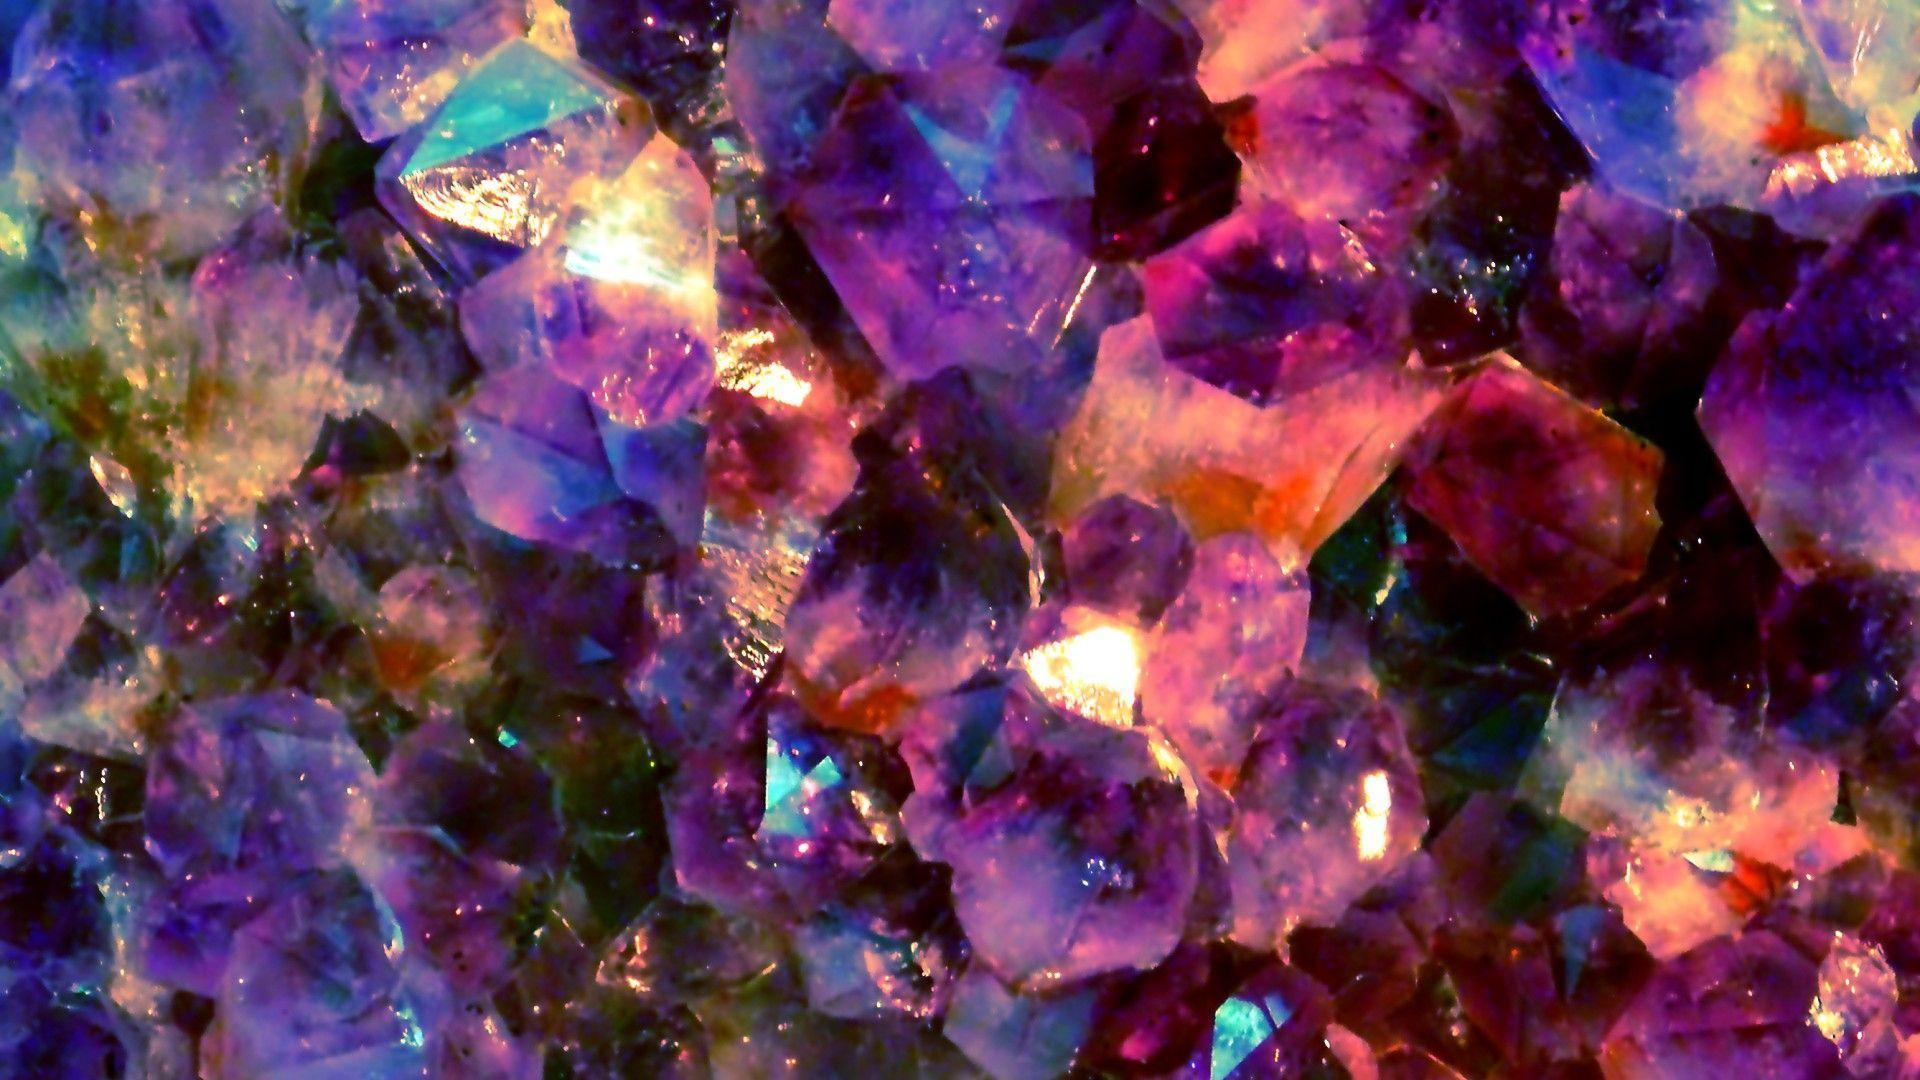 Gemstone Wallpapers Wallpaper Cave HD Wallpapers Download Free Images Wallpaper [1000image.com]